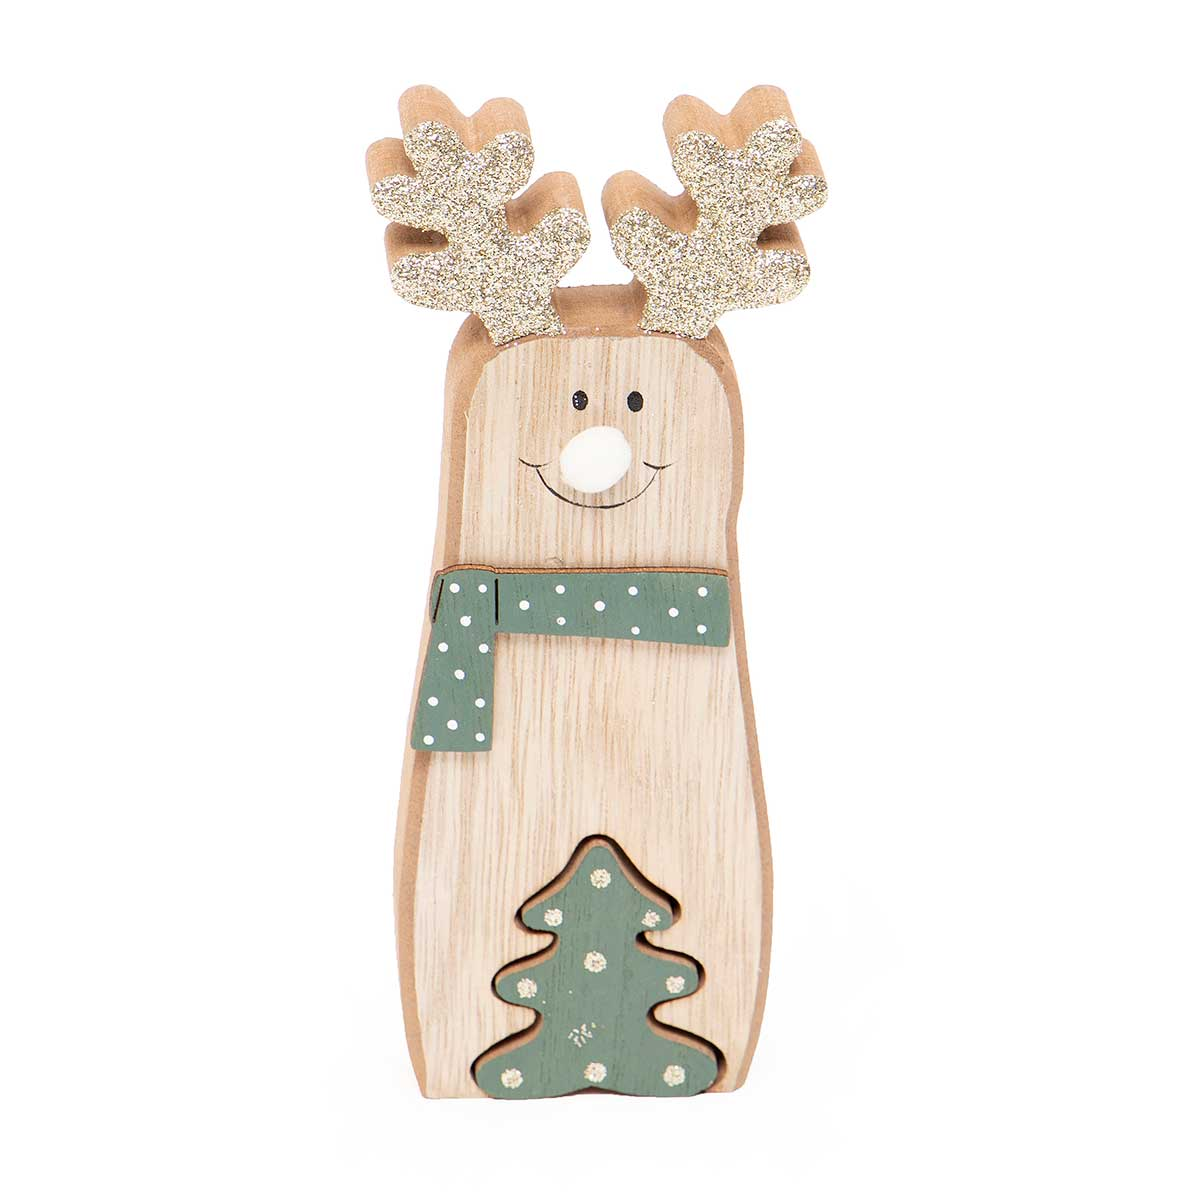 WOOD DEER WITH TREE AND GLITTER SHELF SITTER